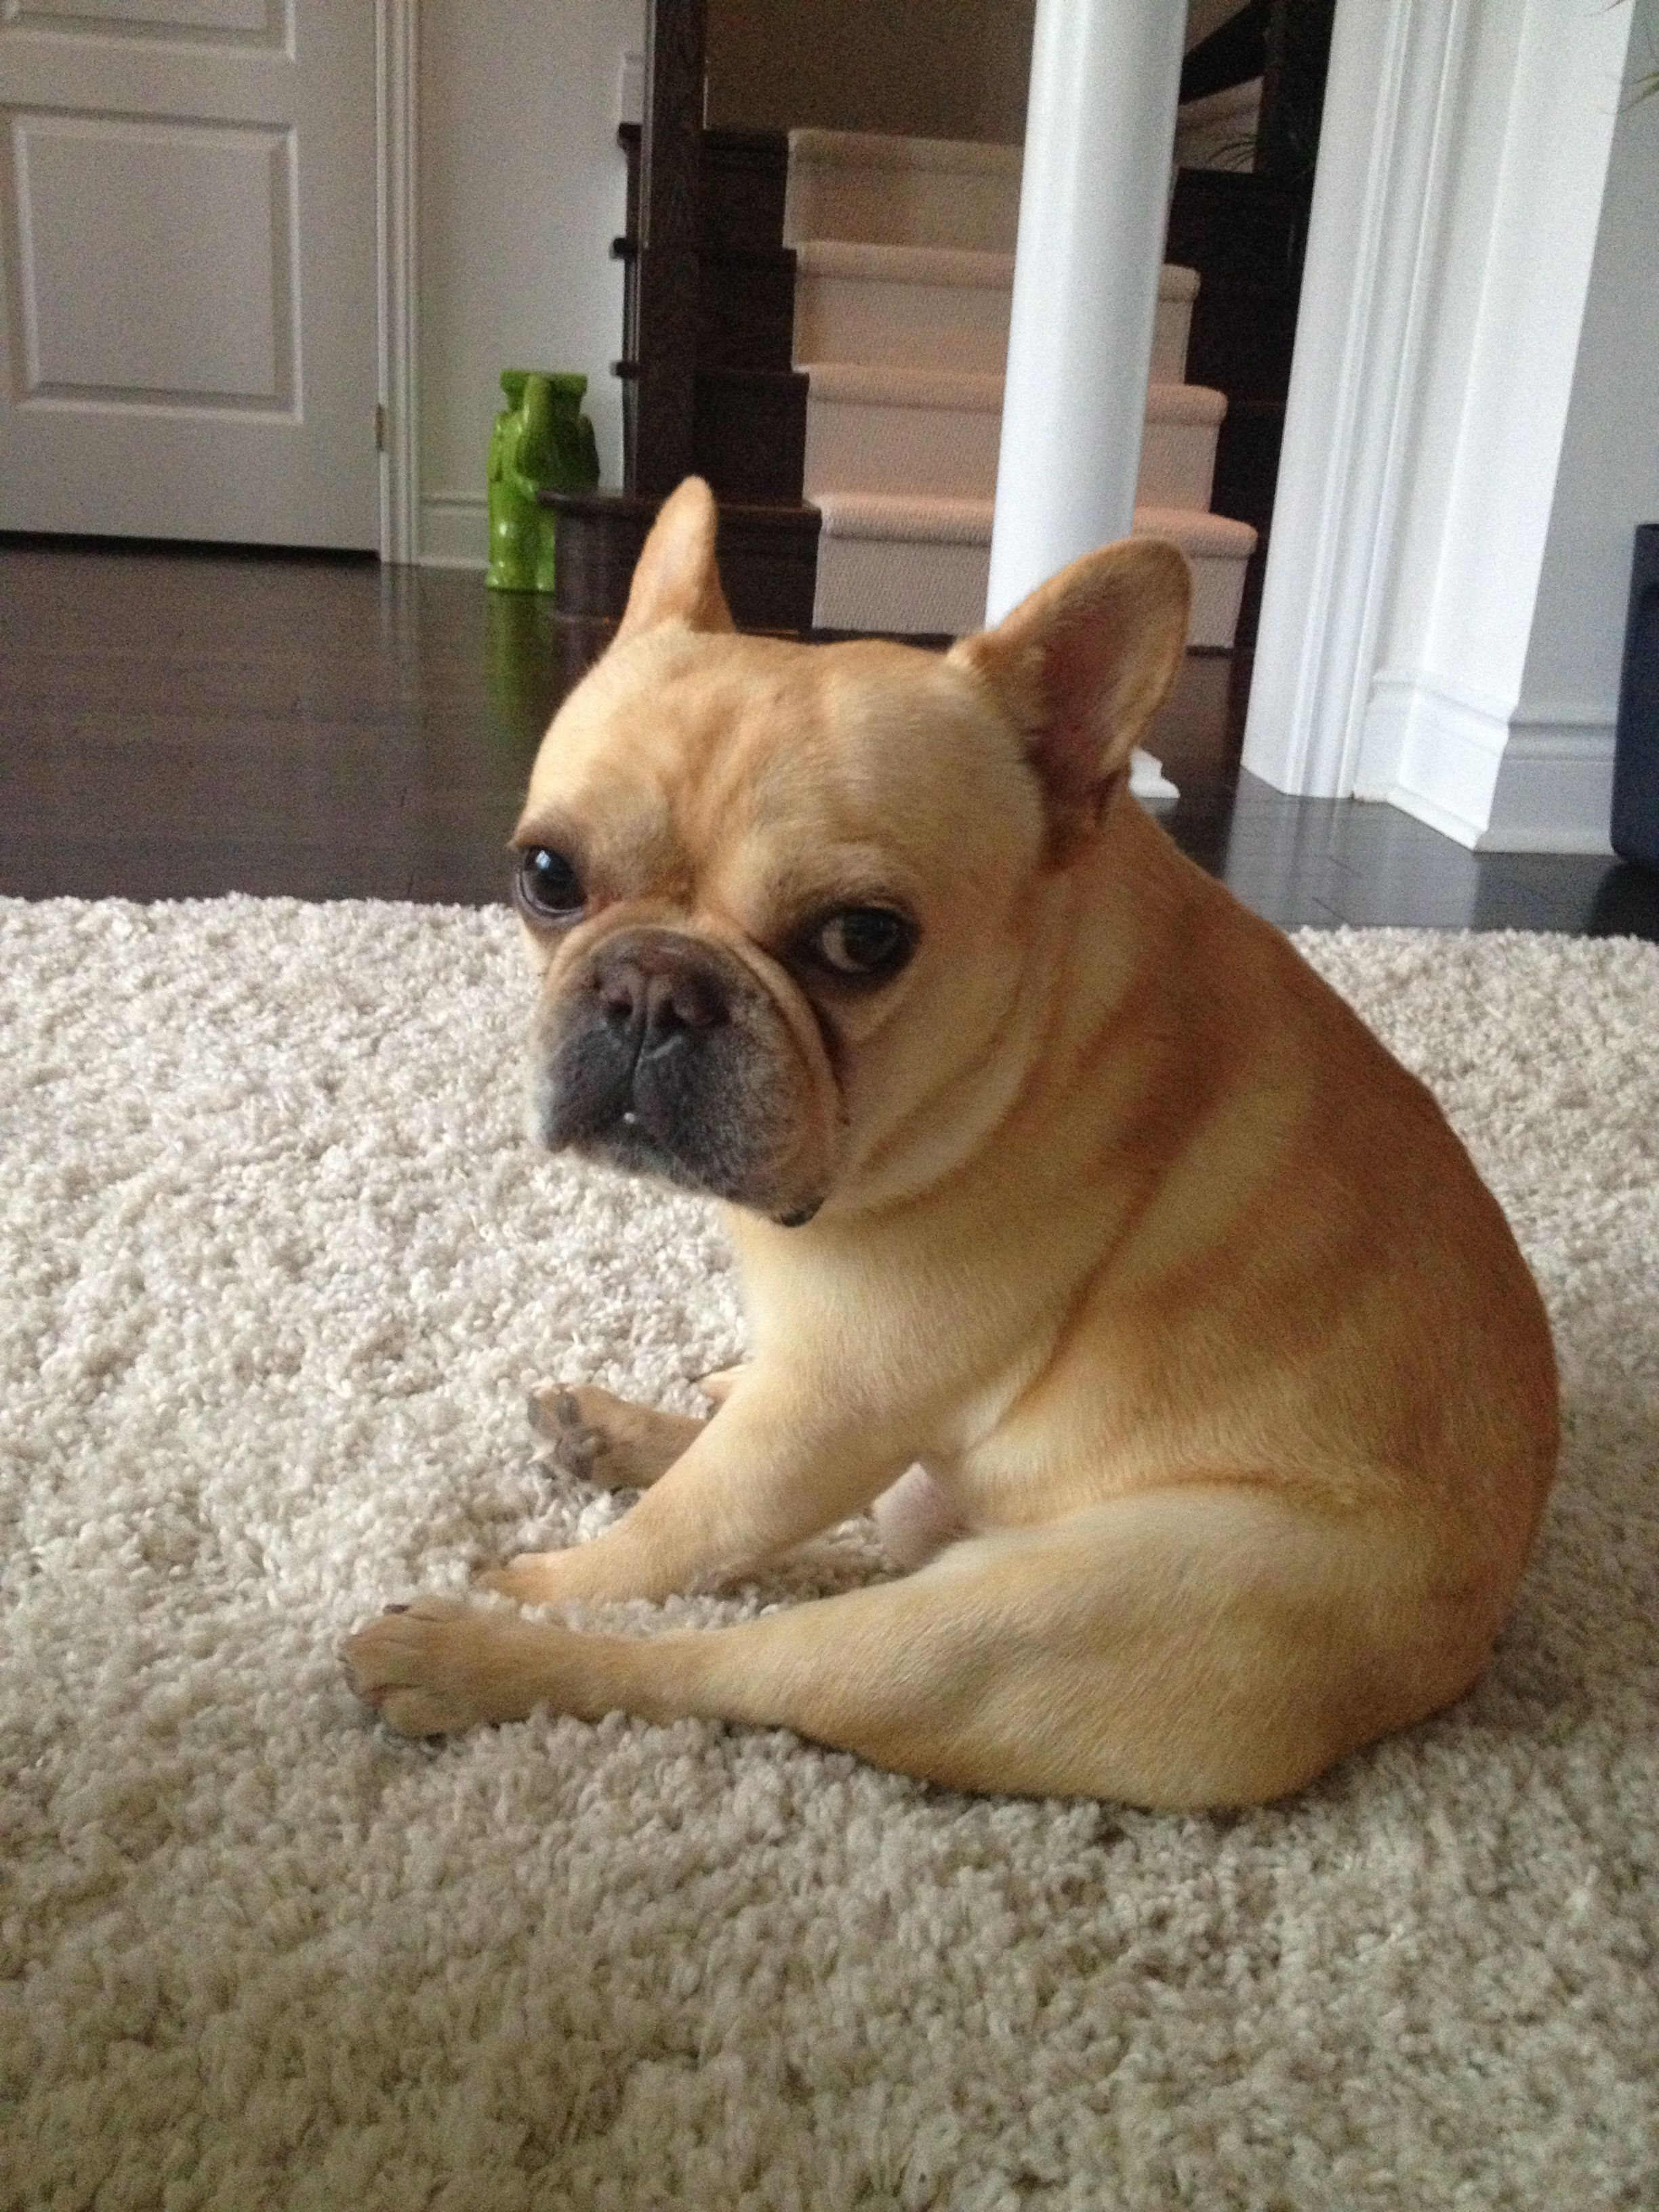 Typical French Bulldog Expression And Sitting Position Baby Dogs Cuddly Animals Cute Animals